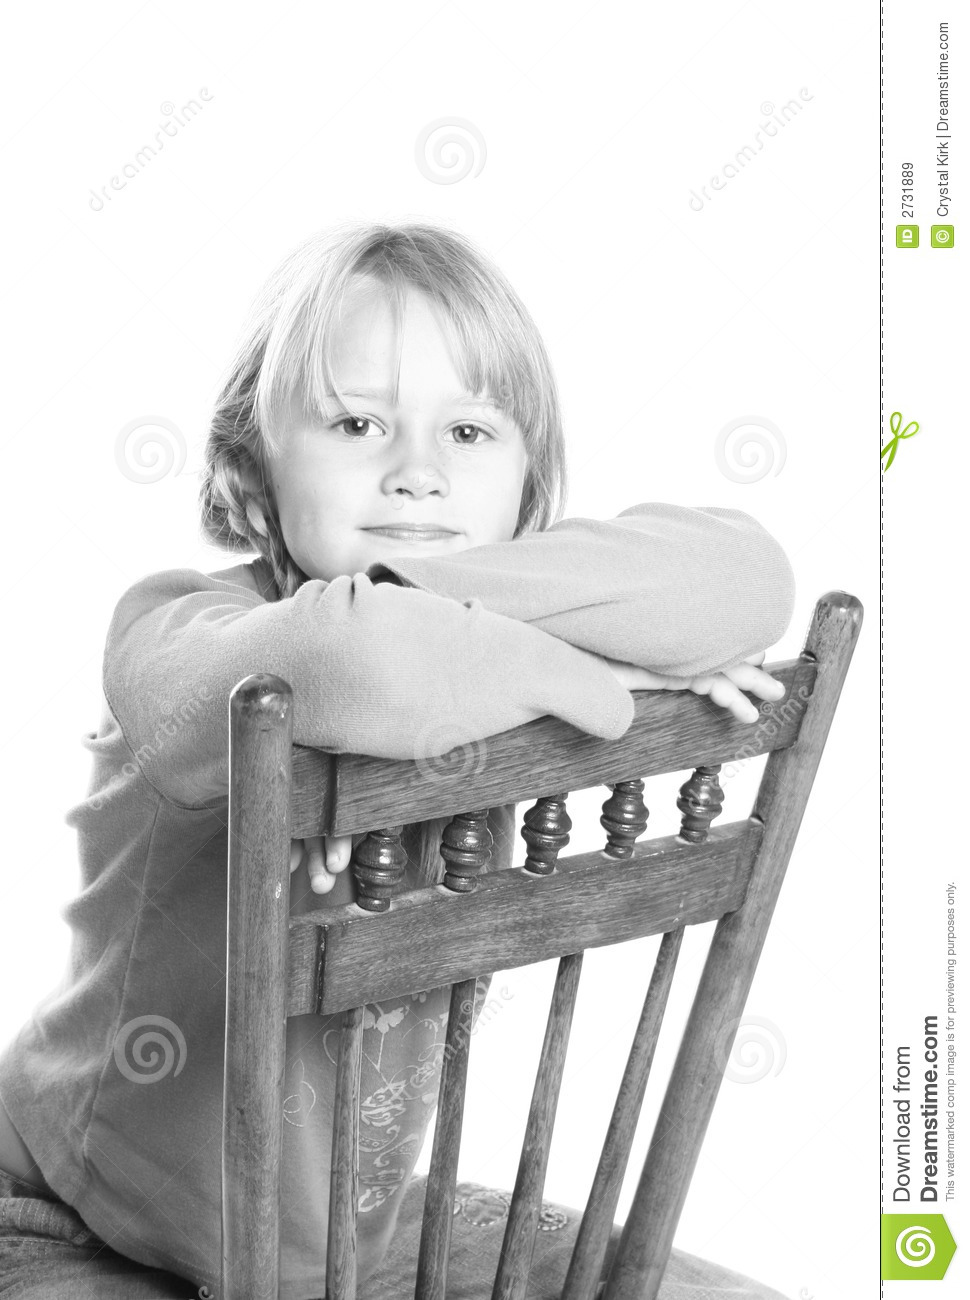 Royalty free stock photo download child sitting in chair